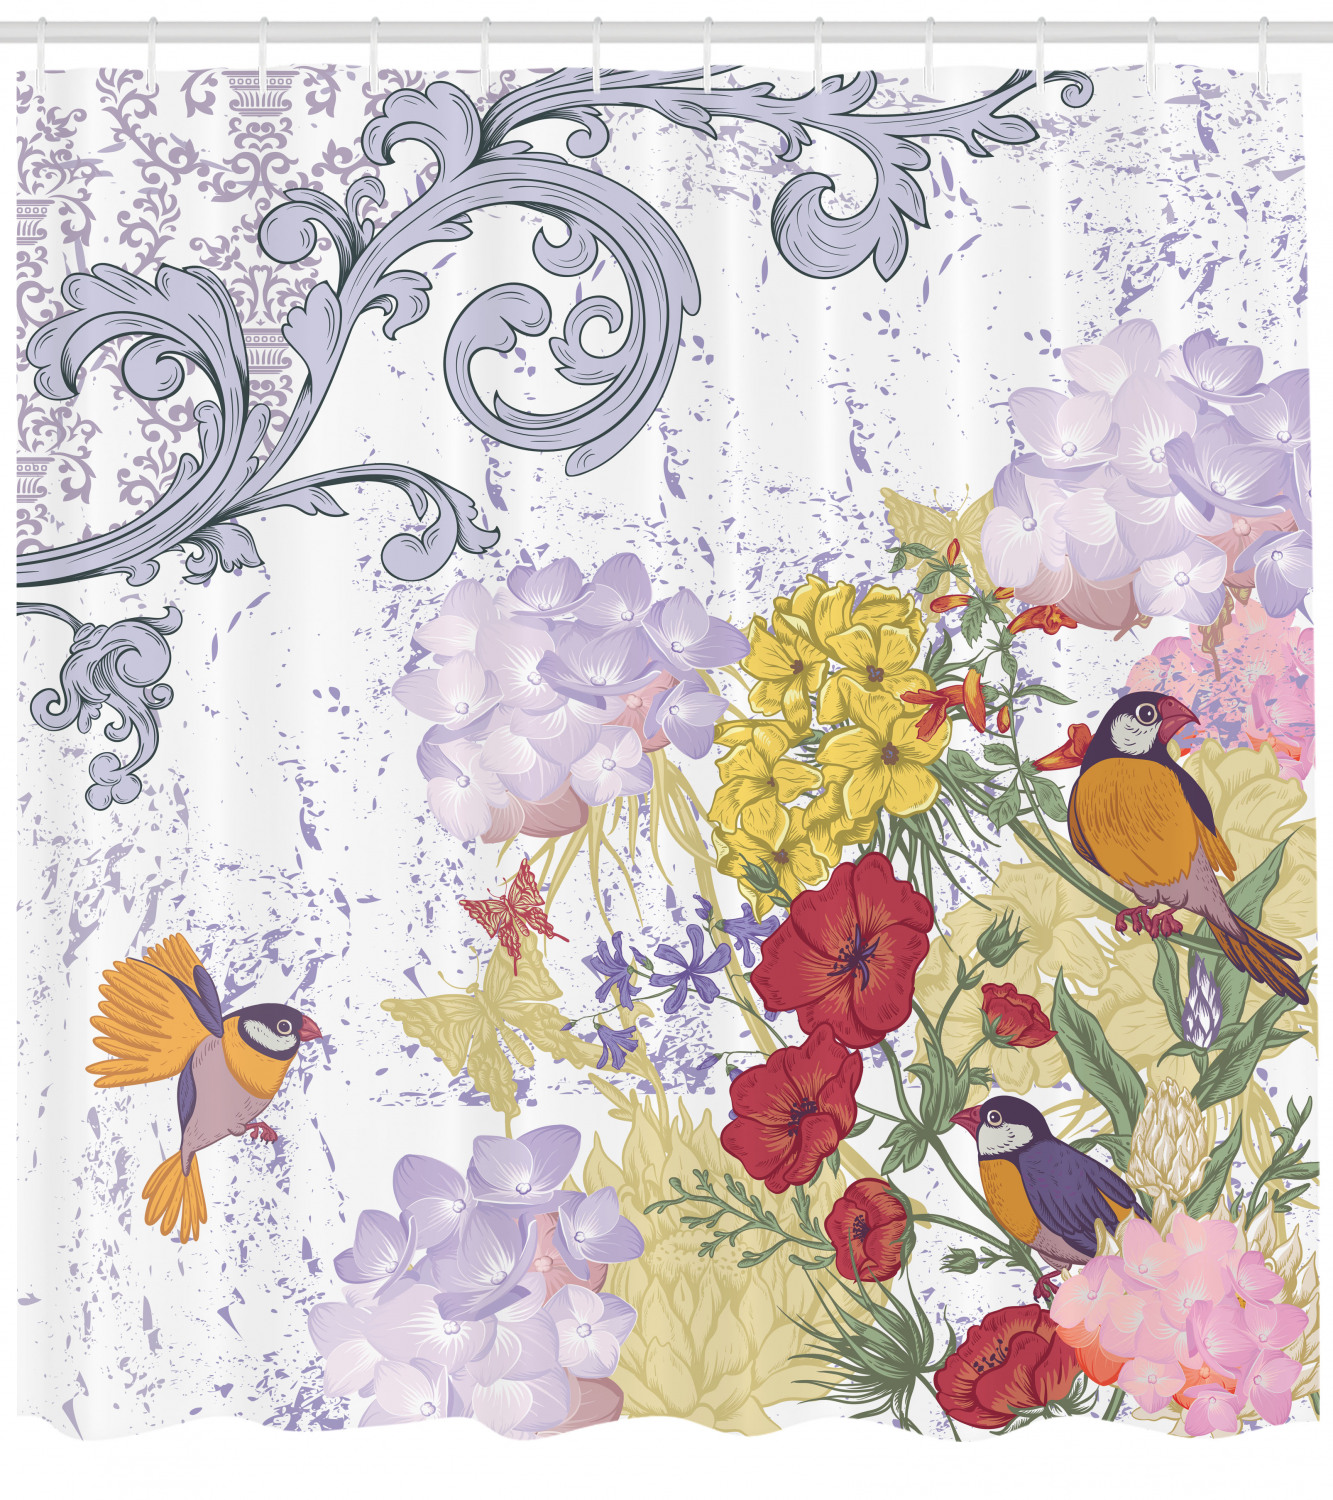 Details About Hydrangeas Decor Flower Pattern Birds French Style Vintage Batik Shower Curtain